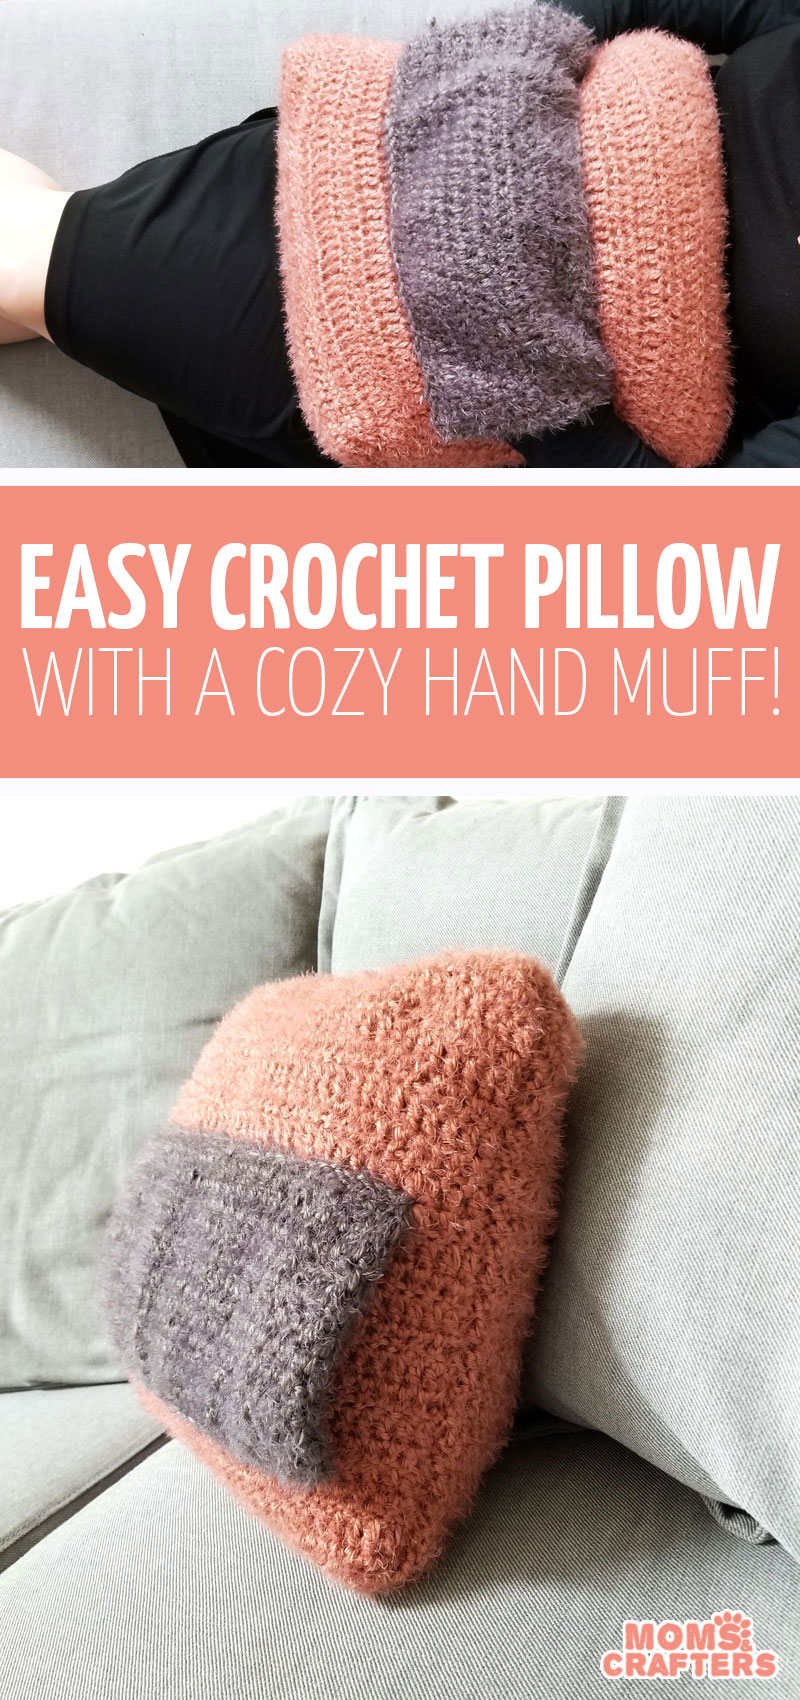 Click to learn how to make an easy crochet throw pillow to add some hygge to your home decor! #hygge #homedecor #crochet